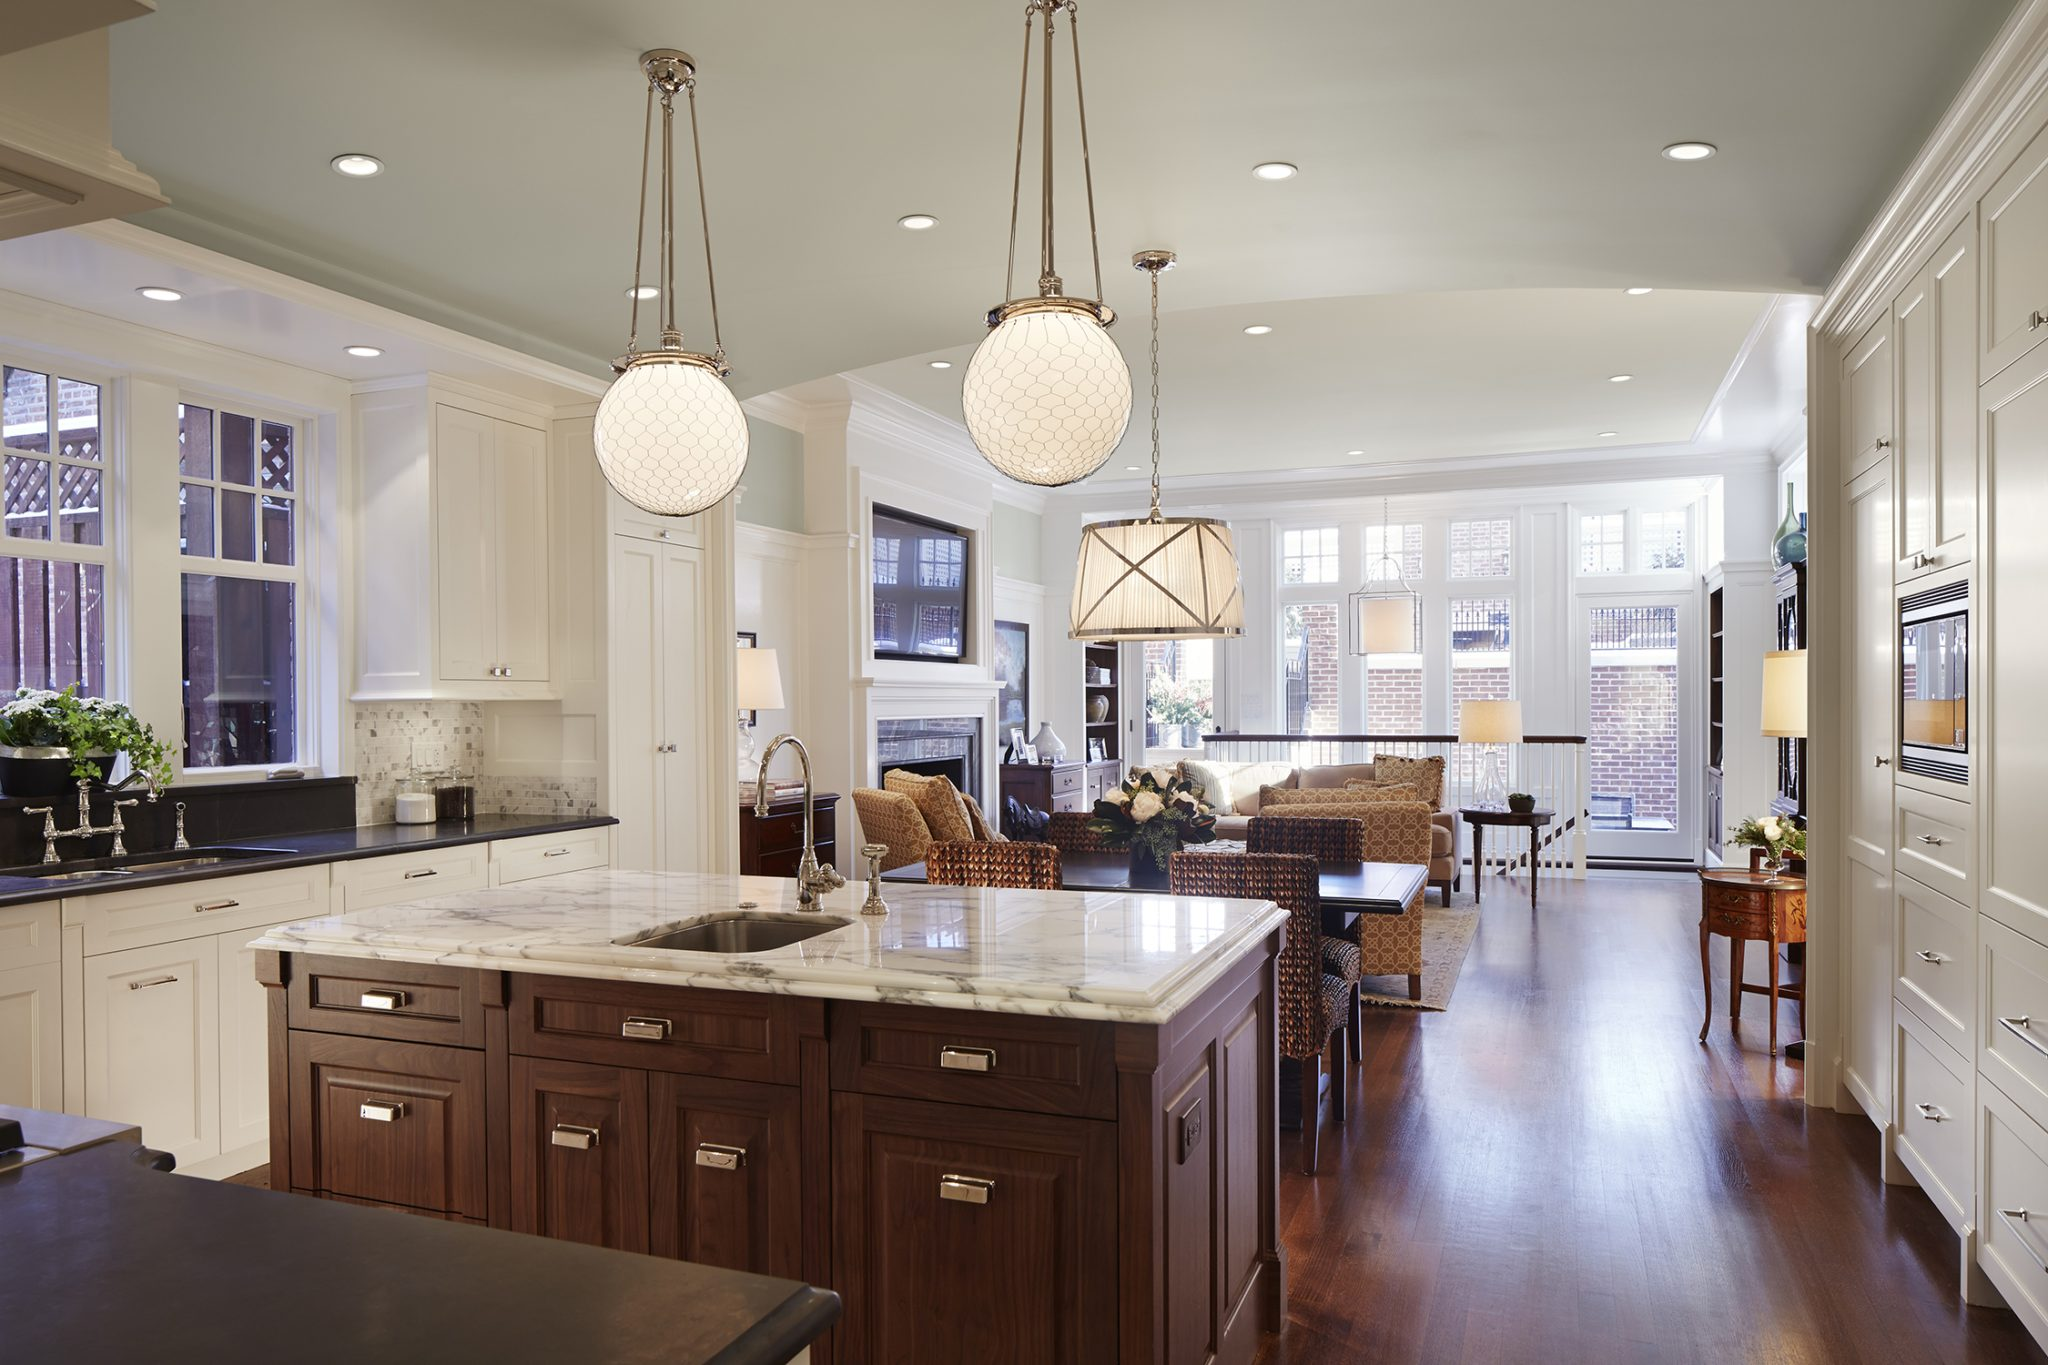 Transitional open kitchen/family room concept by bba ARCHITECTS